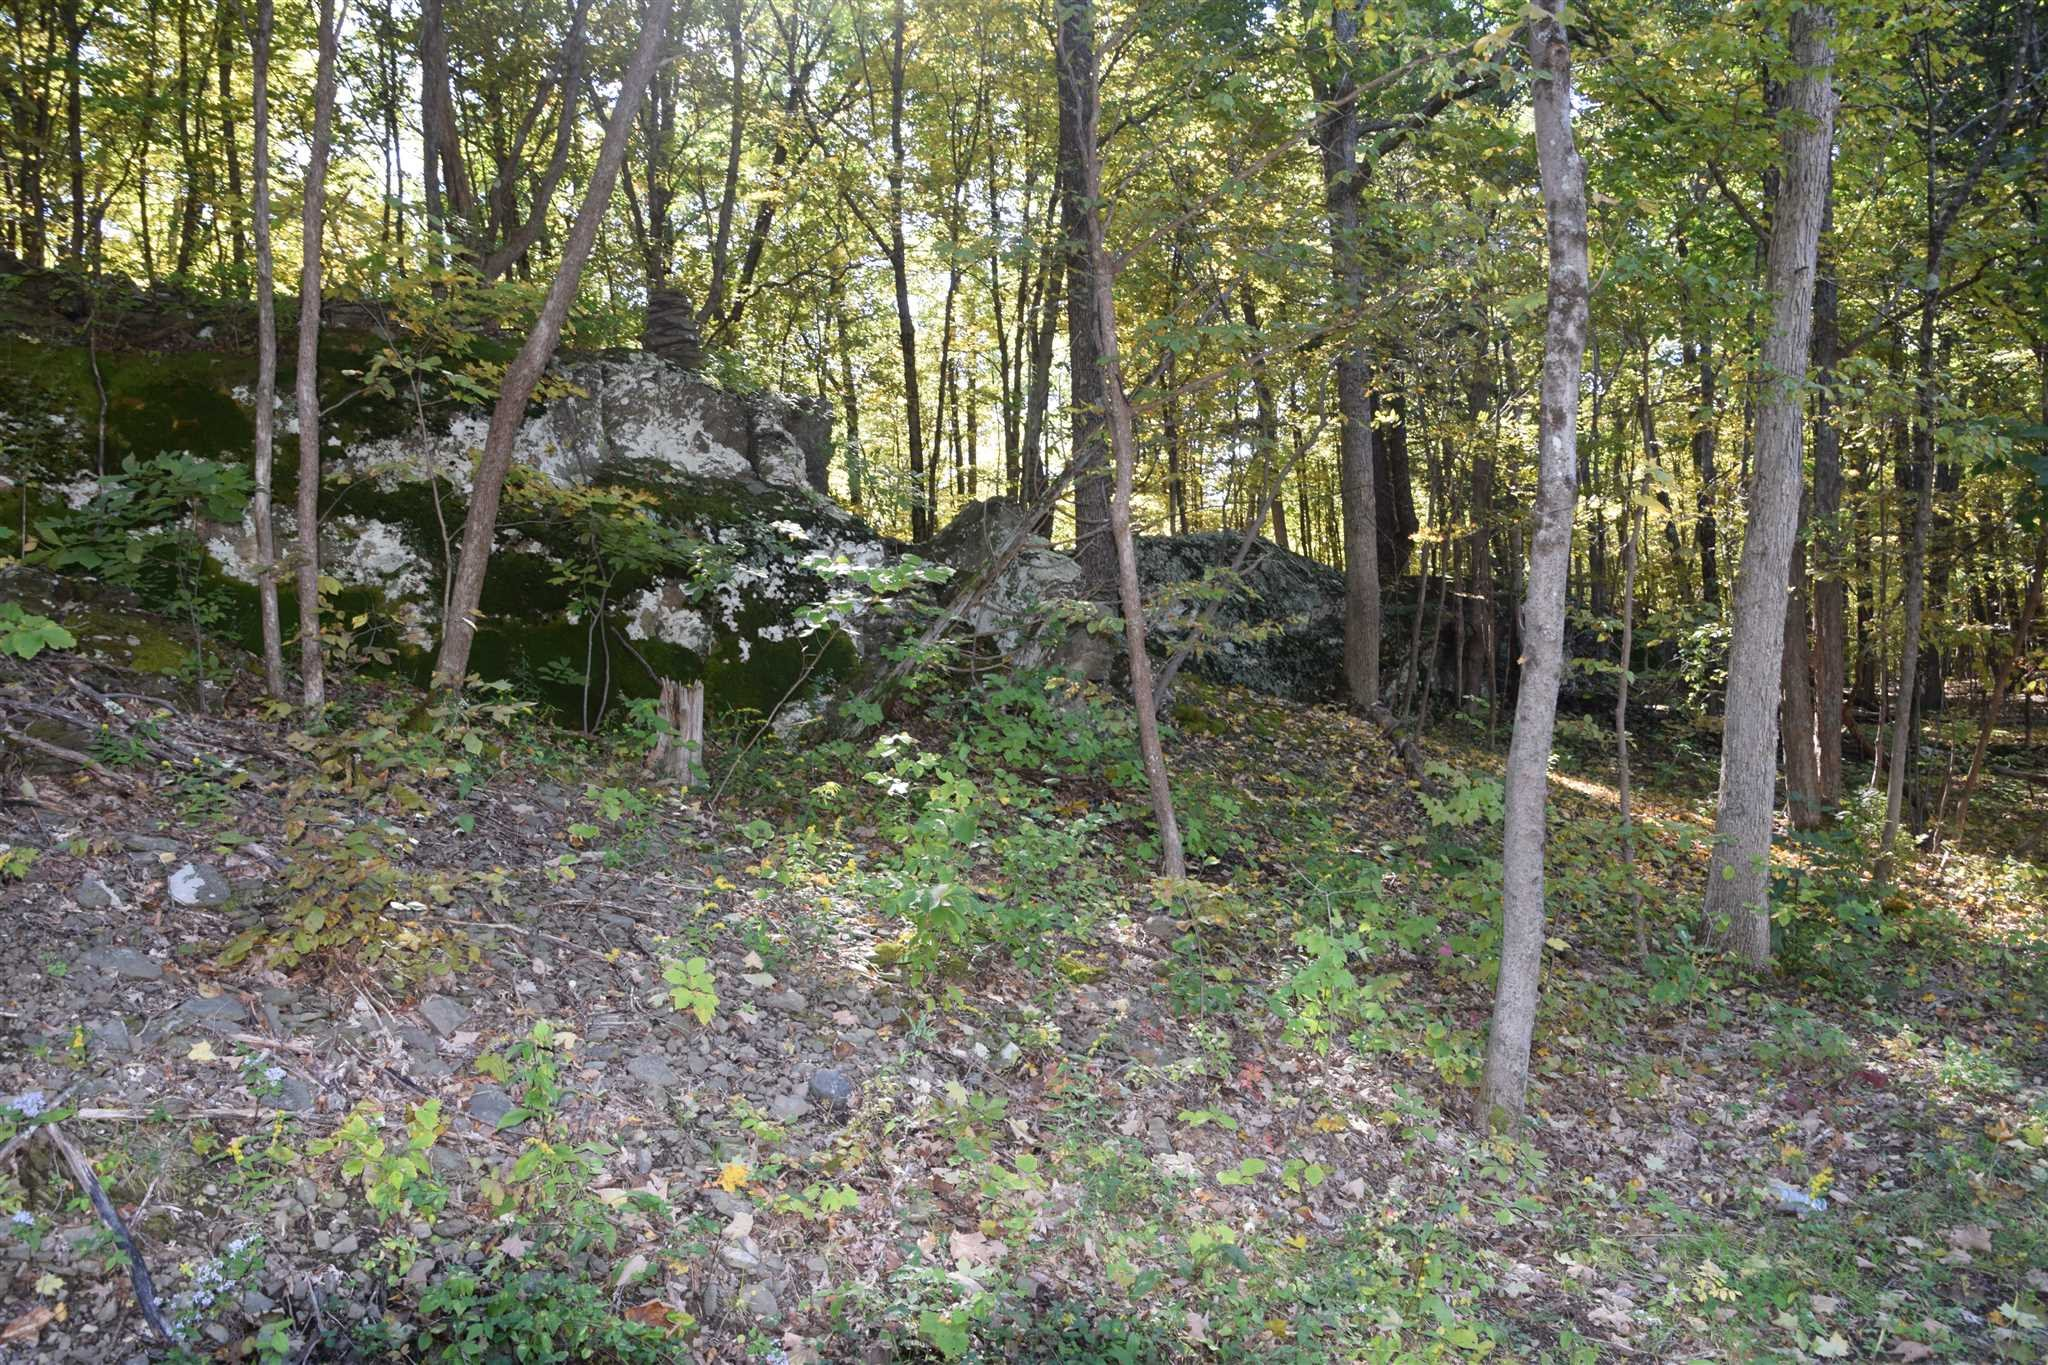 0 US ROUTE 9W Athens, NY 12015 - MLS #: 375848